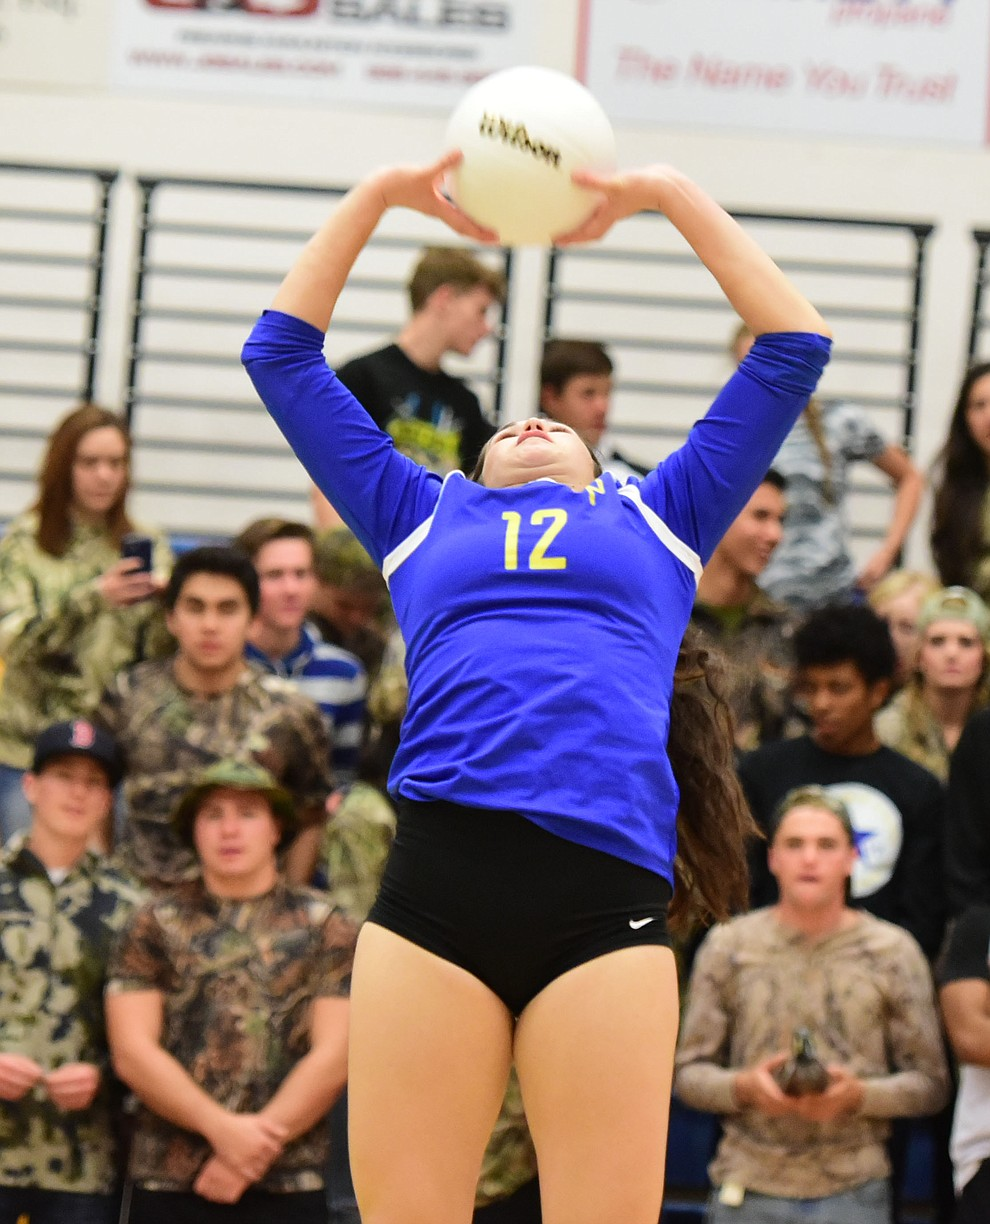 Prescott's Erinn Marroquinn sets the ball as the Lady Badgers take on Pueblo Magnet in the first round of the Arizona Interscholastic Association State Volleyball Tournament in Prescott Wednesday, Nov. 2.